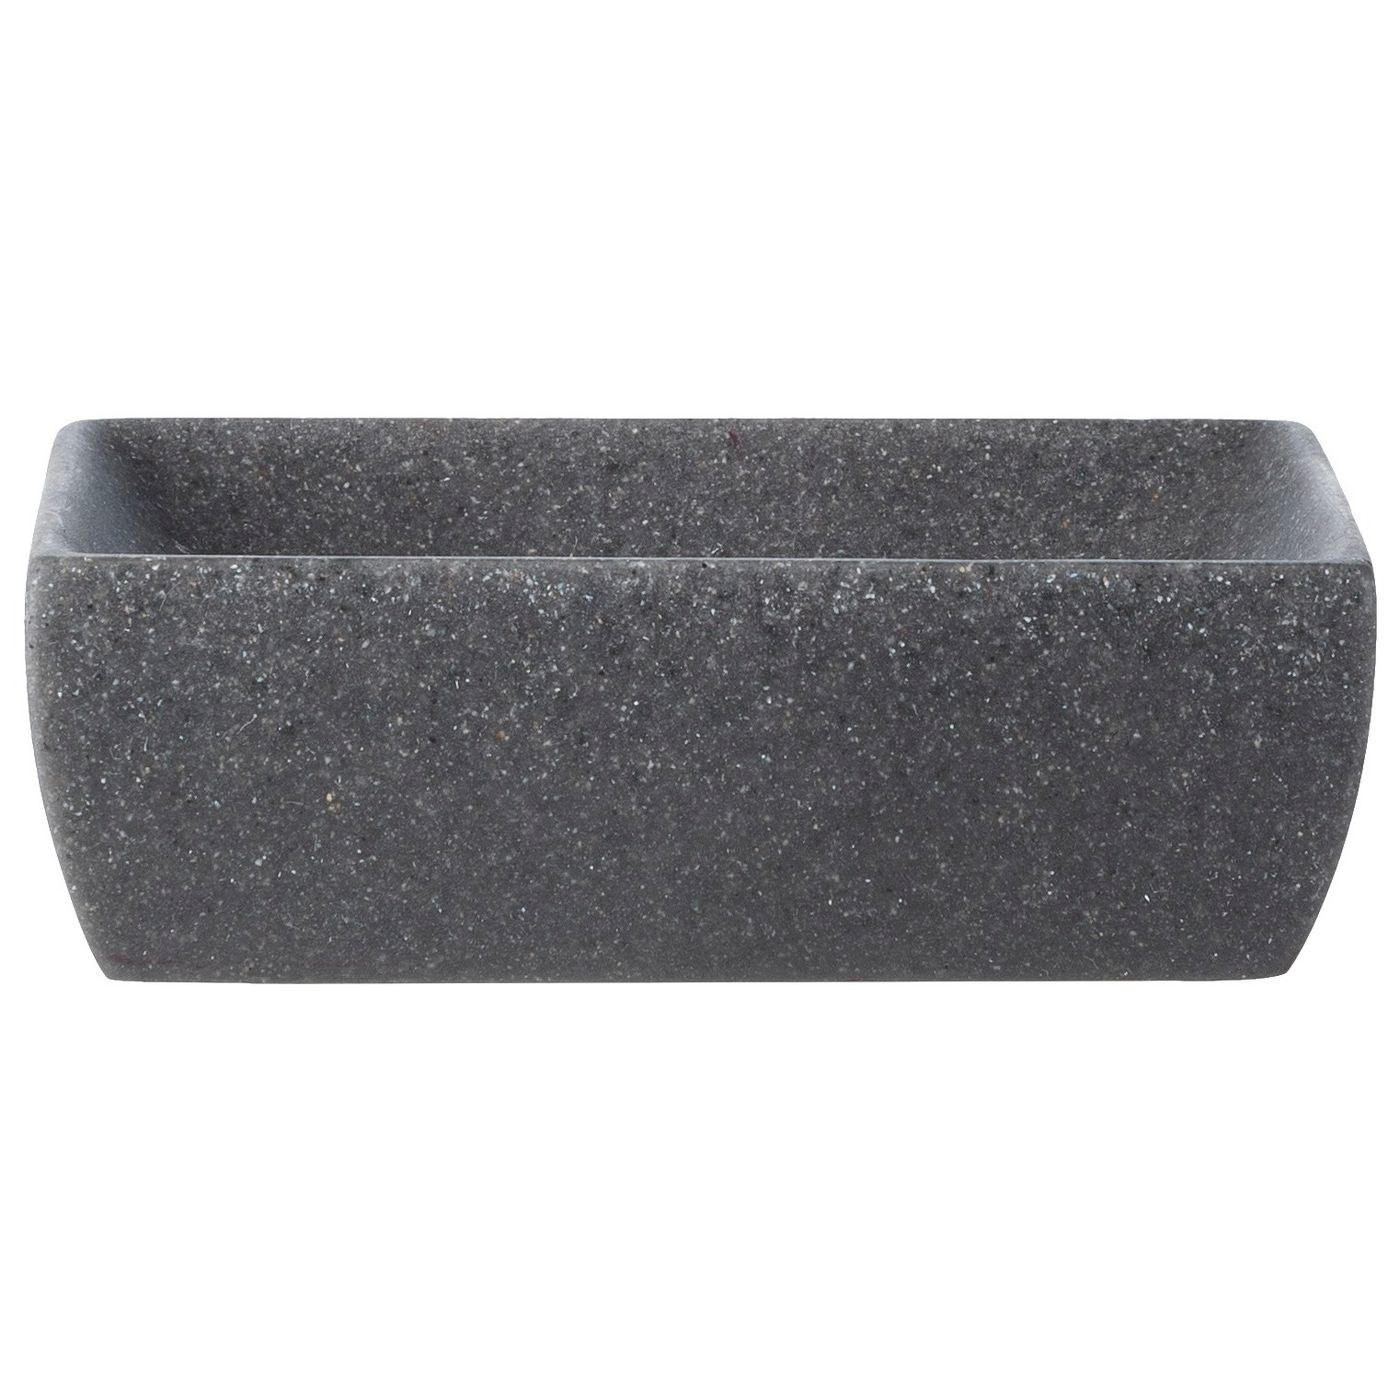 The soapdish, which is a flecked gray stone color, and is rectangular with a dipped center to keep your bar of soap secure and prevent dripping